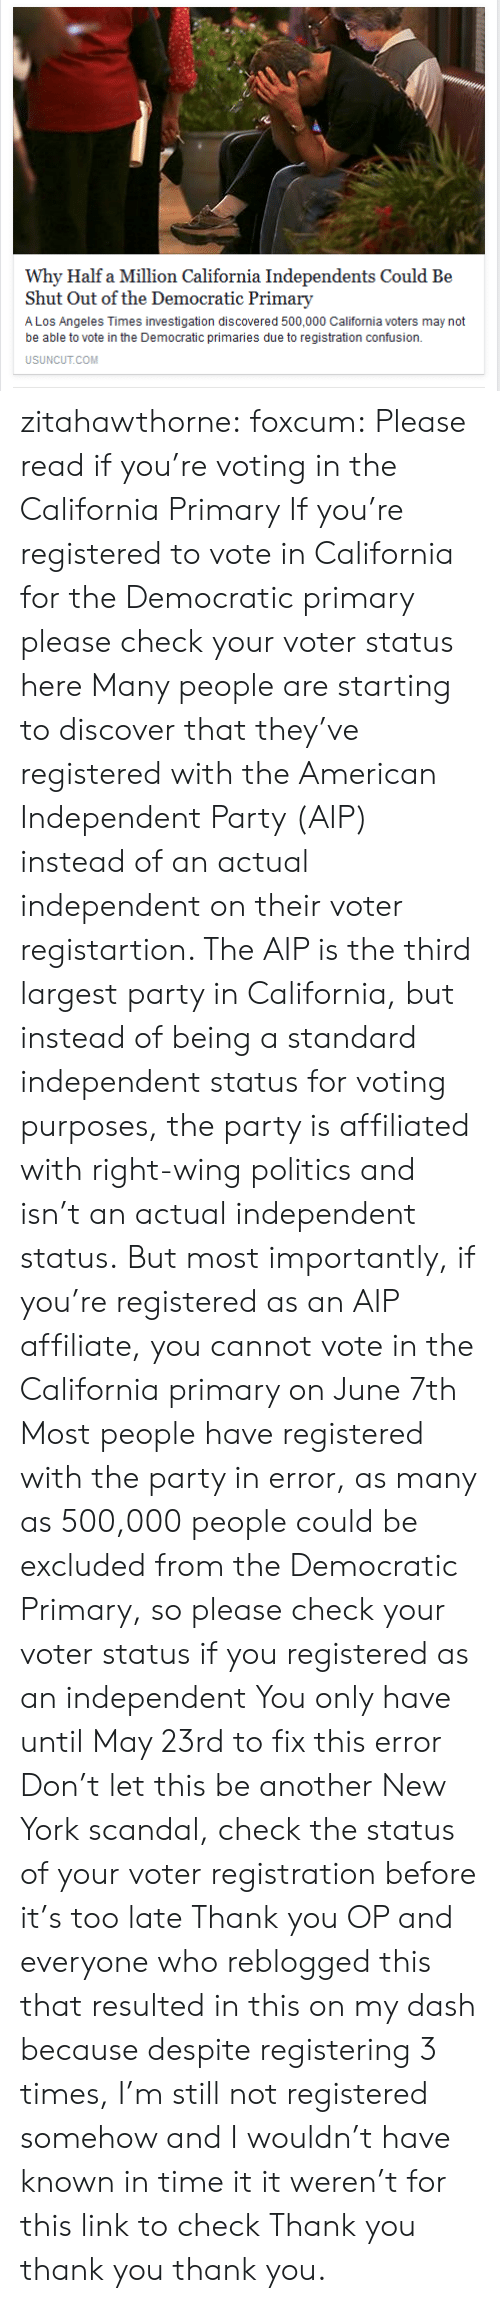 New York, Party, and Politics: Why Half a Million California Independents Could Be  Shut Out of the Democratic Primary  A Los Angeles Times investigation discovered 500,000 California voters may not  be able to vote in the Democratic primaries due to registration confusion.  USUNCUT.COM zitahawthorne:  foxcum:  Please read if you're voting in the California Primary  If you're registered to vote in California for the Democratic primary please check your voter status here  Many people are starting to discover that they've registered with the American Independent Party (AIP) instead of an actual independent on their voter registartion. The AIP is the third largest party in California, but instead of being a standard independent status for voting purposes, the party is affiliated with right-wing politics and isn't an actual independent status.  But most importantly, if you're registered as an AIP affiliate, you cannot vote in the California primary on June 7th  Most people have registered with the party in error, as many as 500,000 people could be excluded from the Democratic Primary, so please check your voter status if you registered as an independent  You only have until May 23rd to fix this error  Don't let this be another New York scandal, check the status of your voter registration before it's too late  Thank you OP and everyone who reblogged this that resulted in this on my dash because despite registering 3 times, I'm still not registered somehow and I wouldn't have known in time it it weren't for this link to check  Thank you thank you thank you.